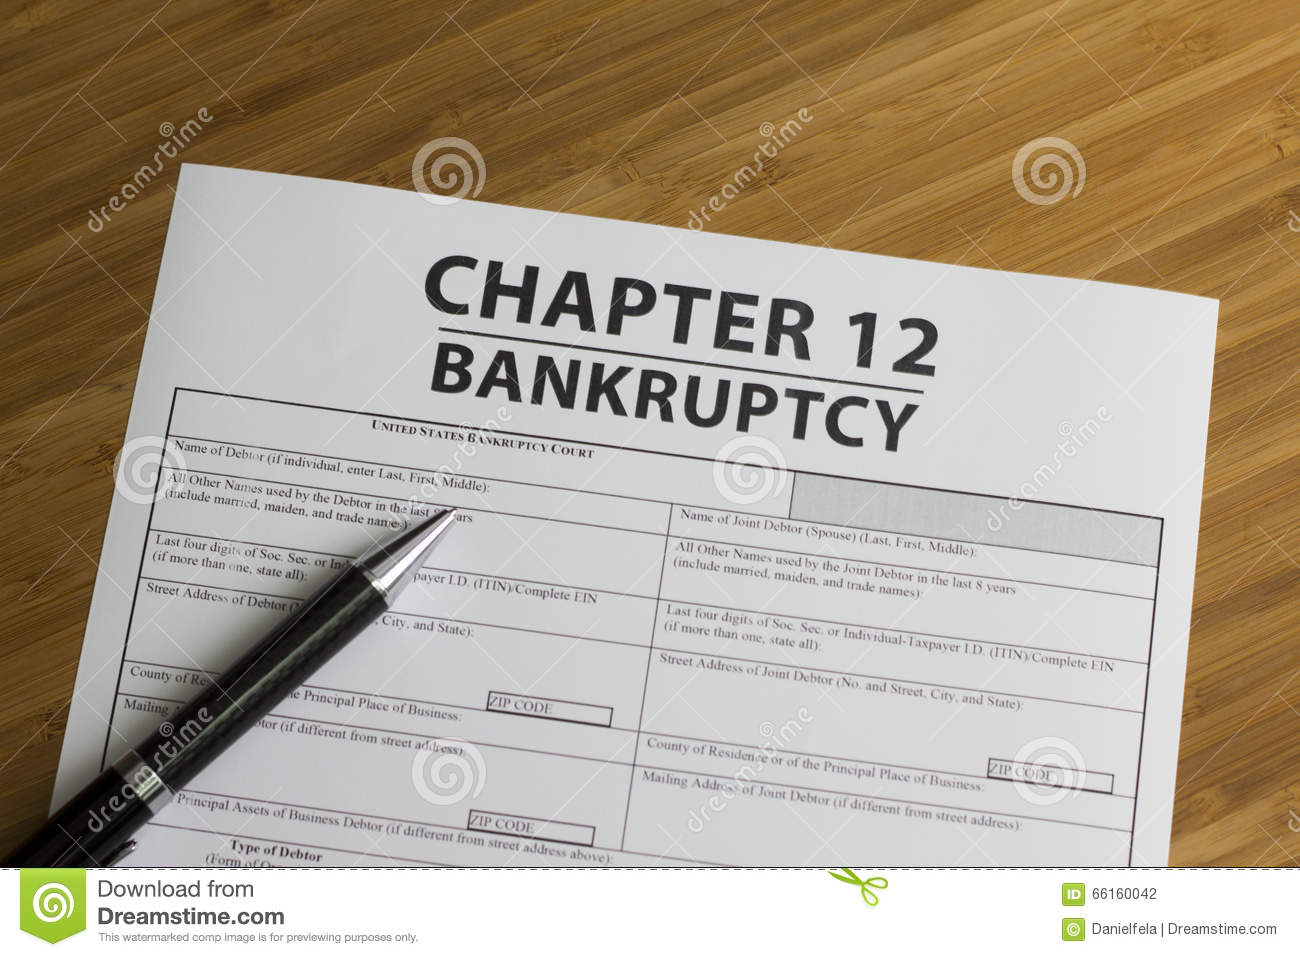 Bankruptcy Chapter 12 Stock Photo  Image 66160042. Keller Academic Calendar Advanced Hair Studio. Filing Bankruptcy In Texas Compass Van Lines. 2009 Dodge Challenger Se For Sale. Compare Credit Cards With Rewards. Marymount College Virginia Gmat Score Of 600. Double Sided Business Card Cox College Online. Where Can I Get A Loan Fast C# Code Analysis. Film College In California Irs Rules For Ira